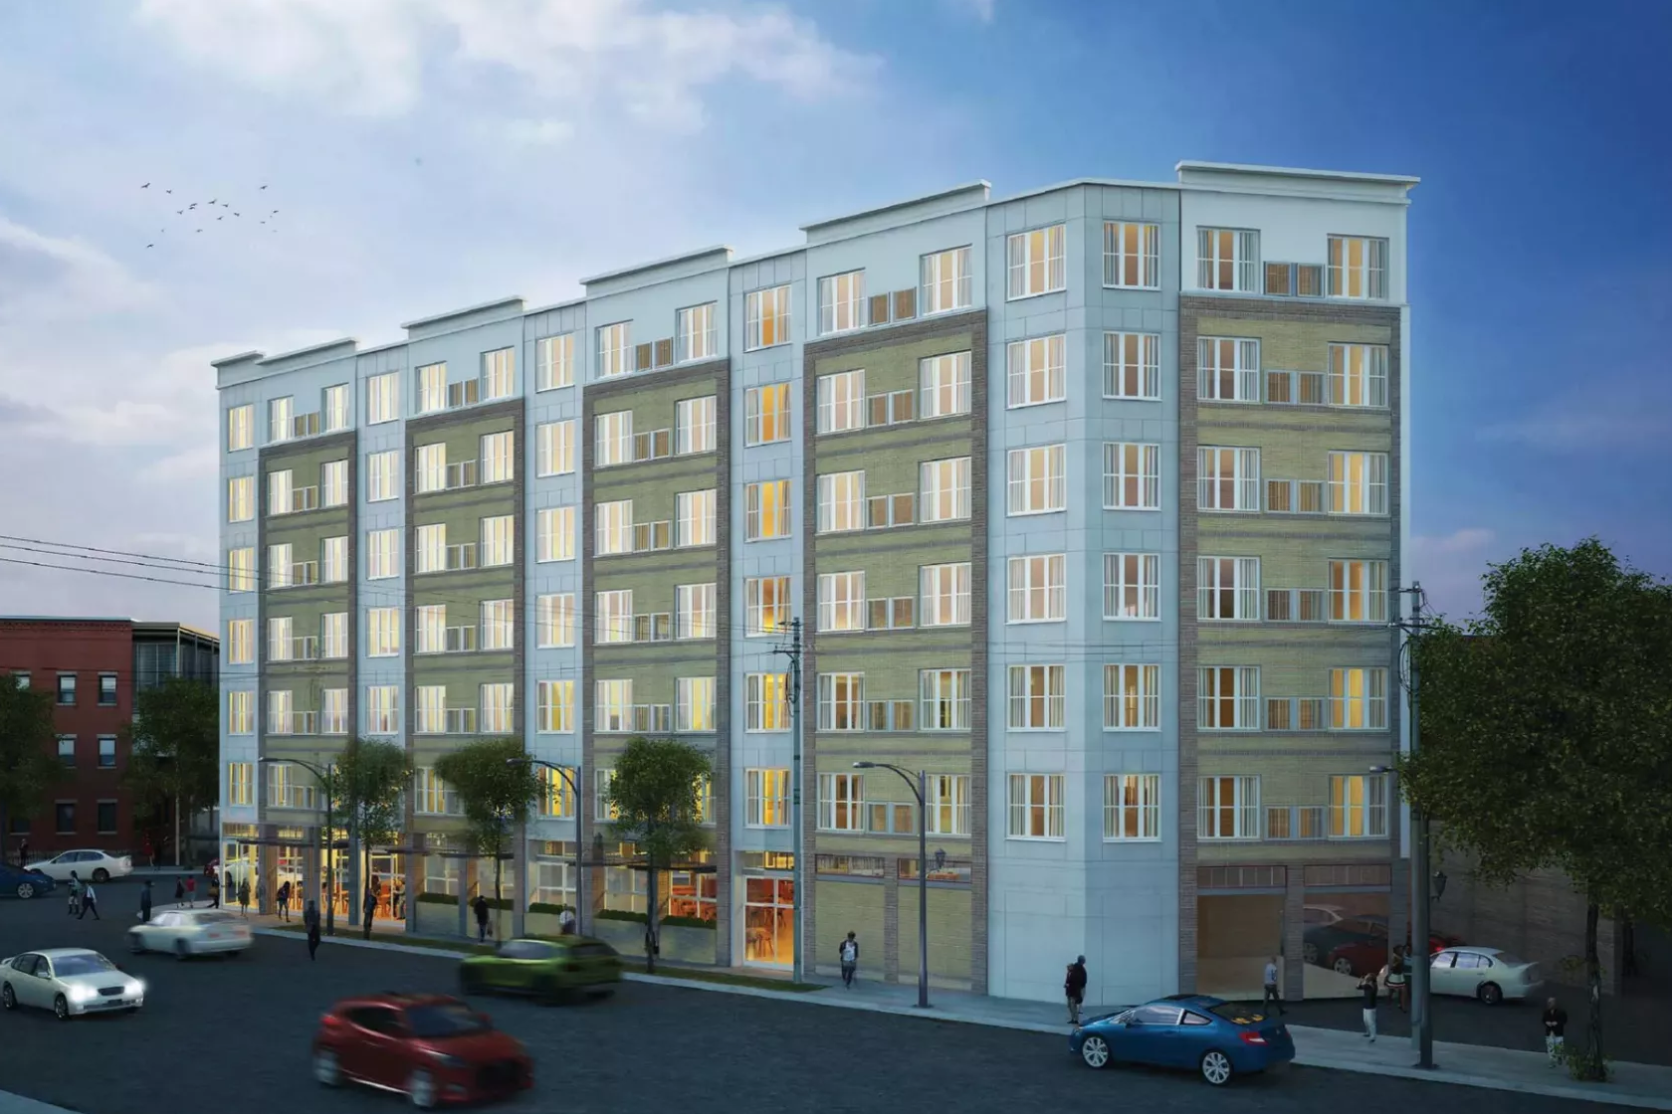 Logan Square LGBTQ Friendly Affordable Housing Project Cleared To Rise